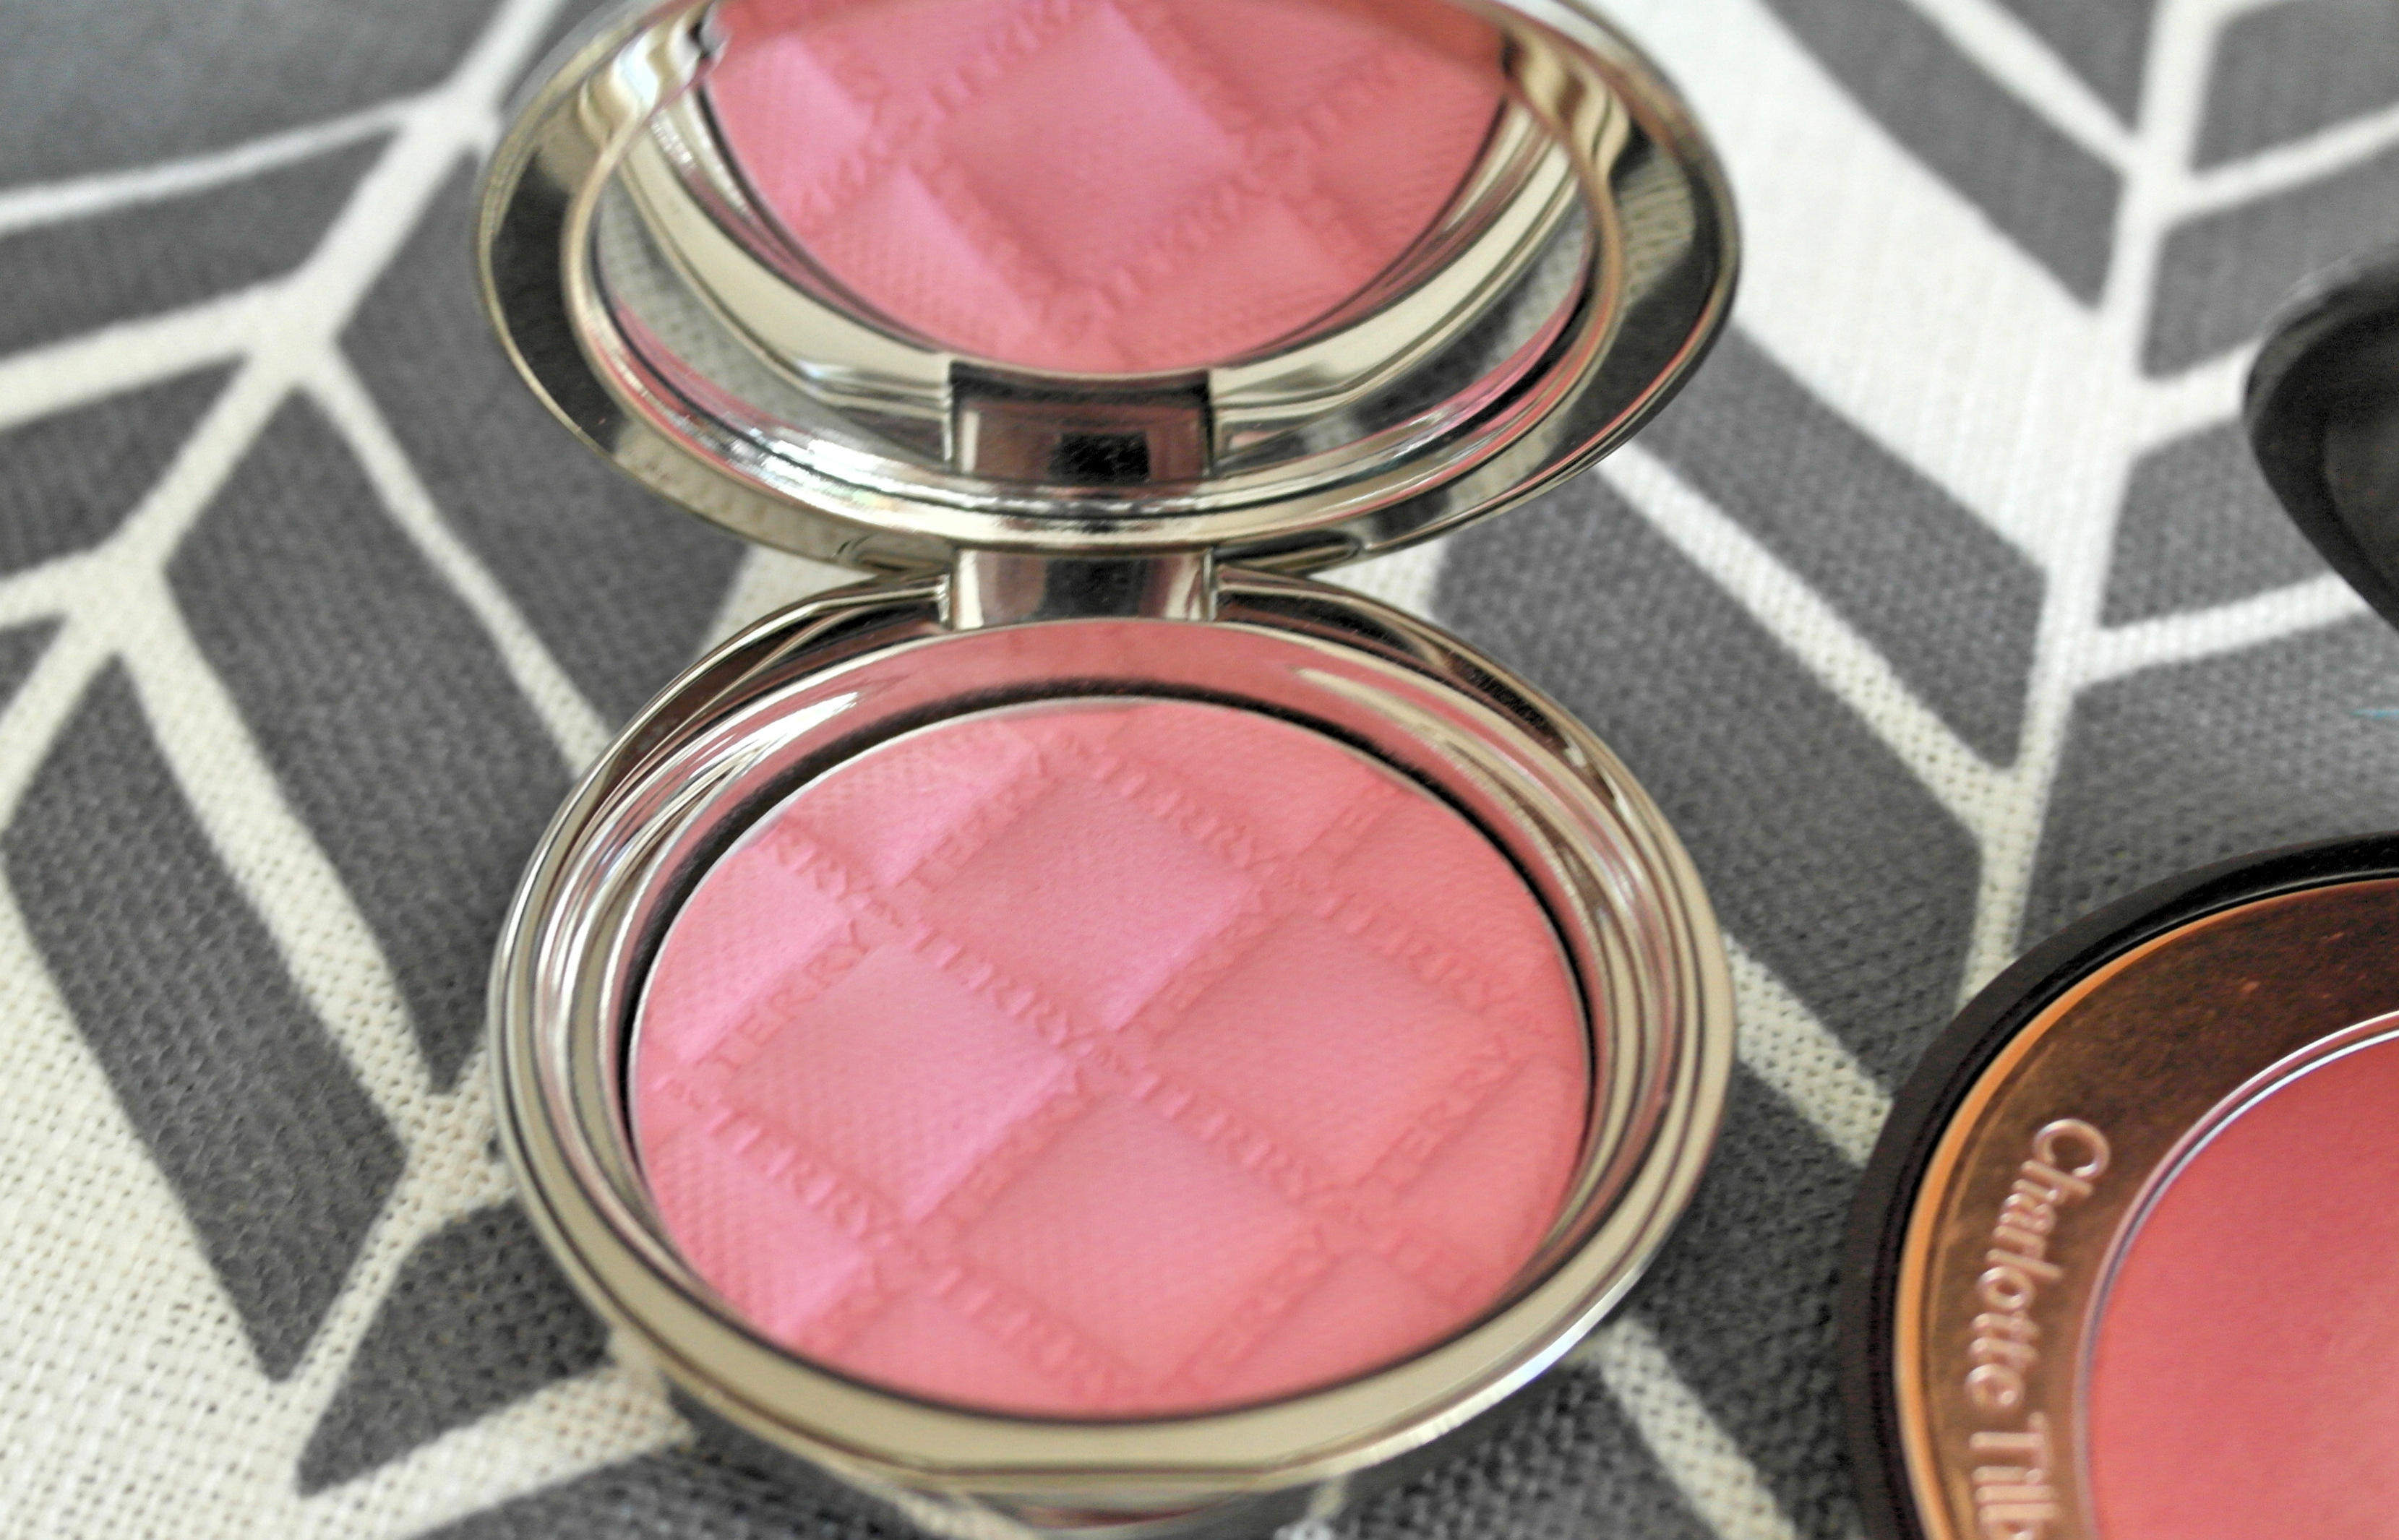 By Terry Terrybly Densiliss Blush in #5 Sexy Pink & Charlotte Tilbury Cheek to Chic Swish & Pop Blush in Love Glow